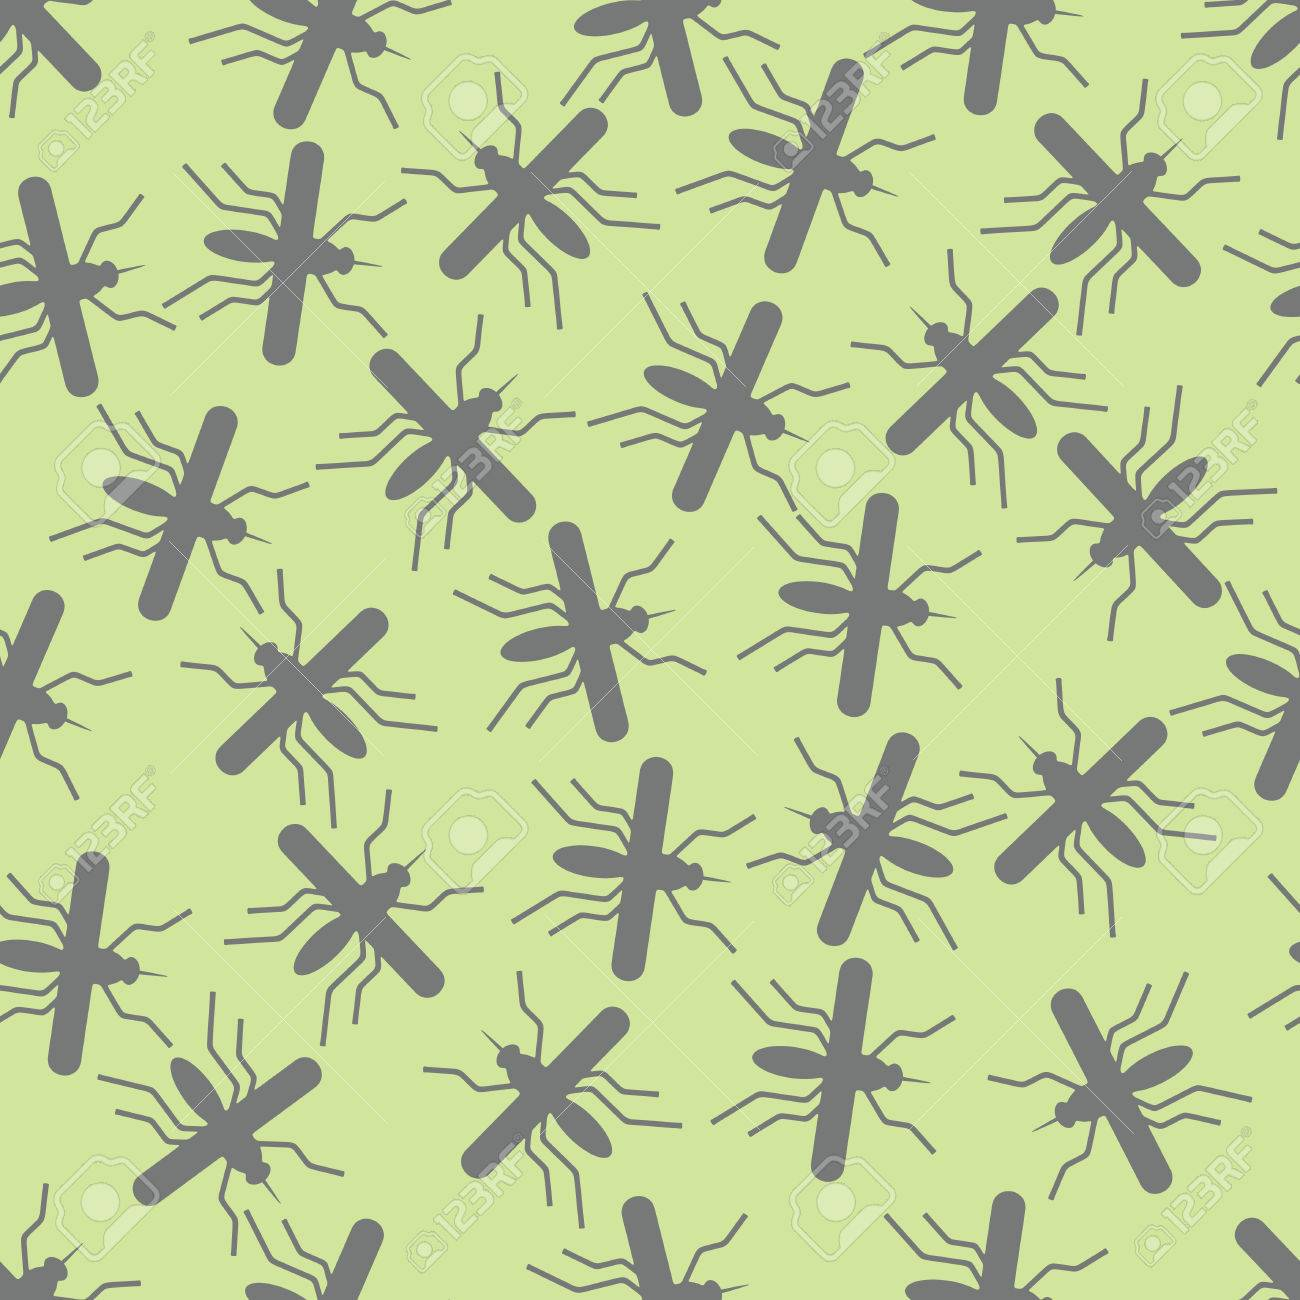 seamless background: mosquito. Vector Illustration Design Pattern Stock Vector - 25625207